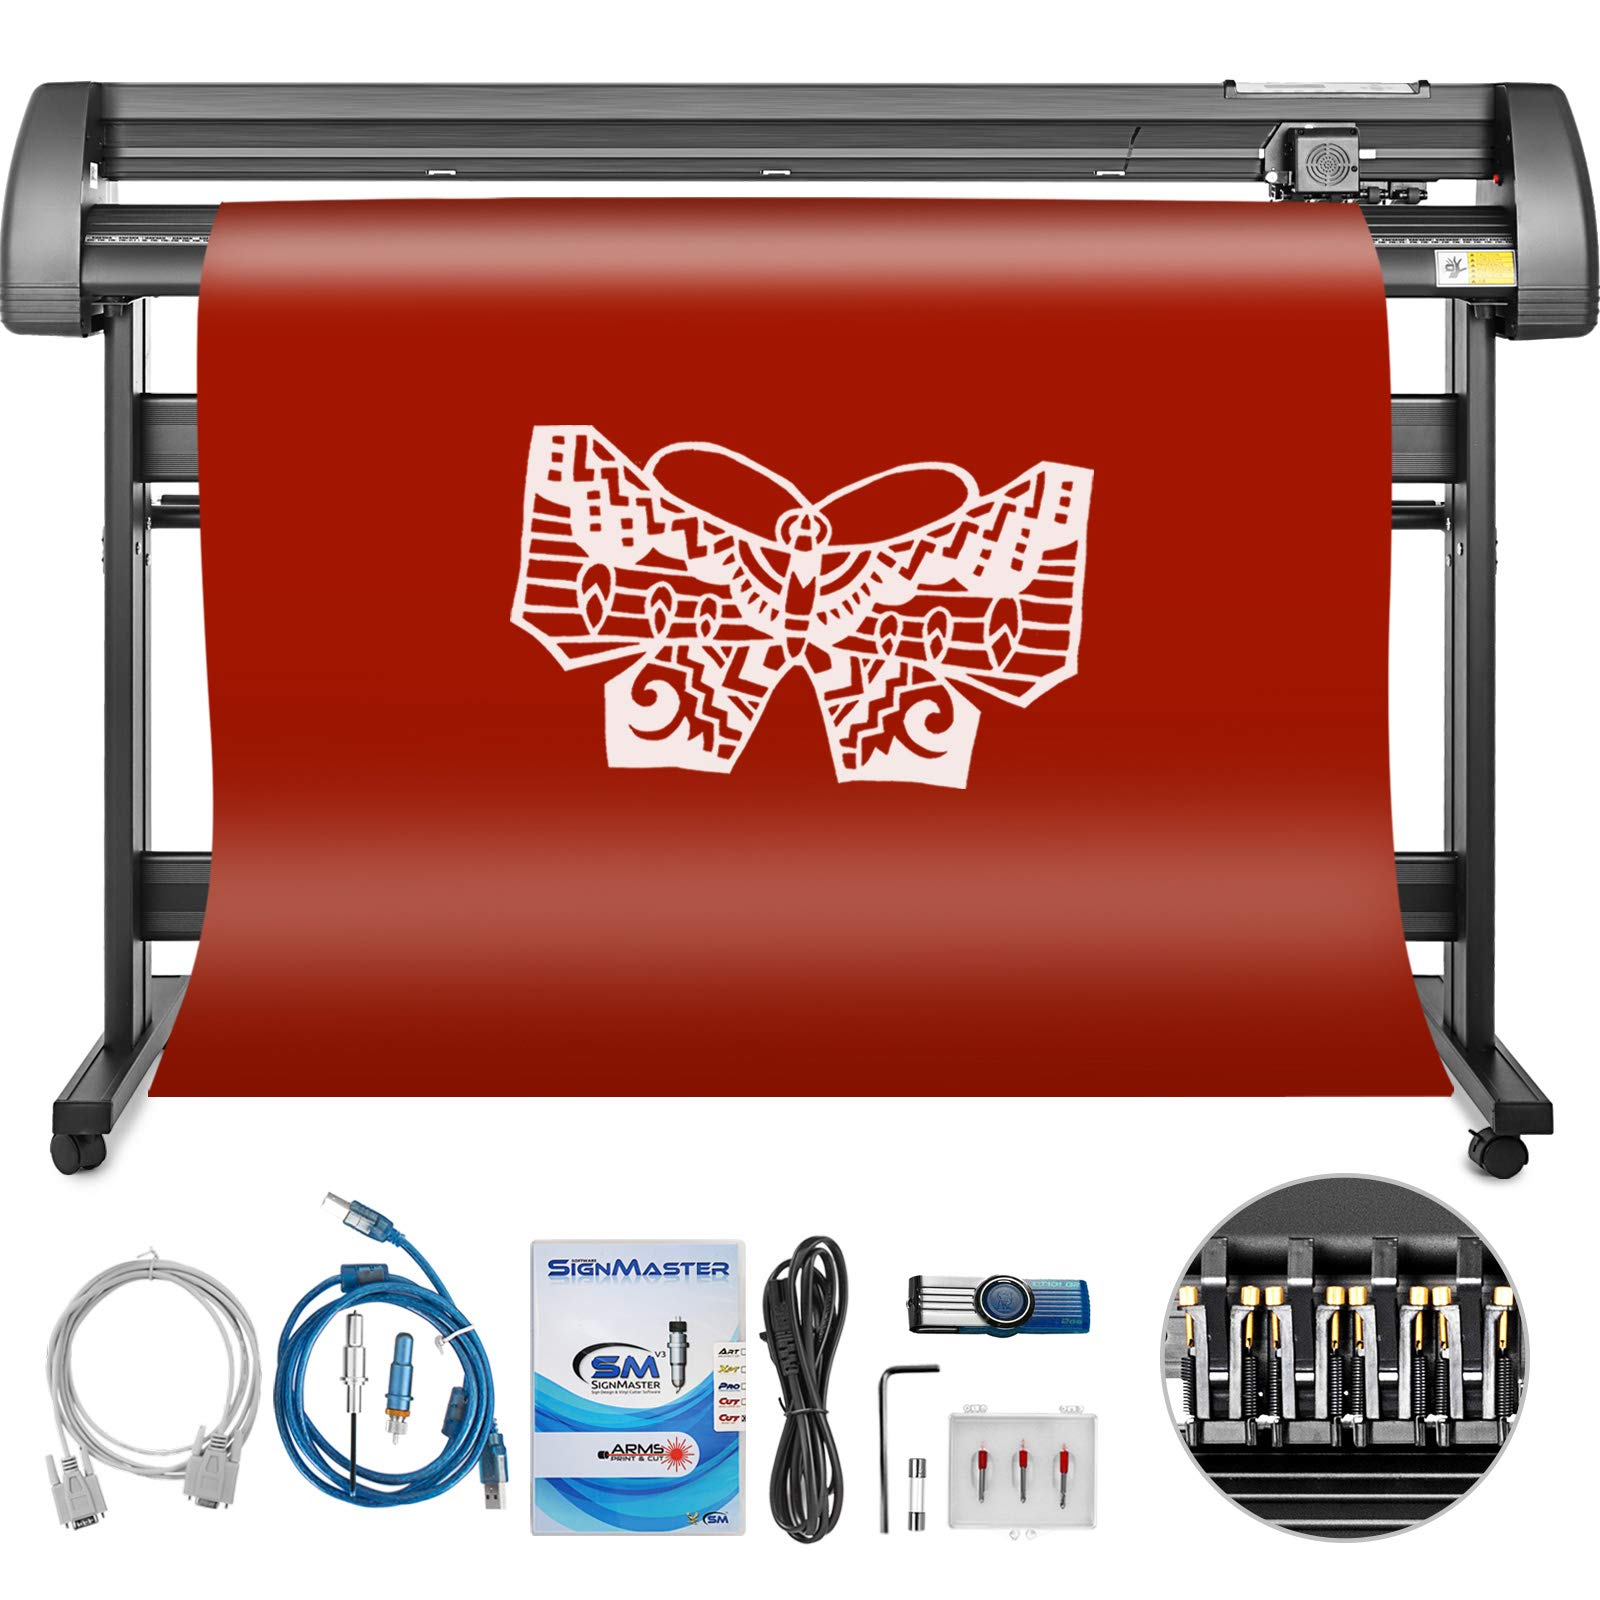 Mophorn Vinyl Cutter 53 Inch Vinyl Cutter Machine 1340mm Vinyl Printer  Cutter Machine LCD Display Vinyl Plotter Cutter Machine Signmaster Software